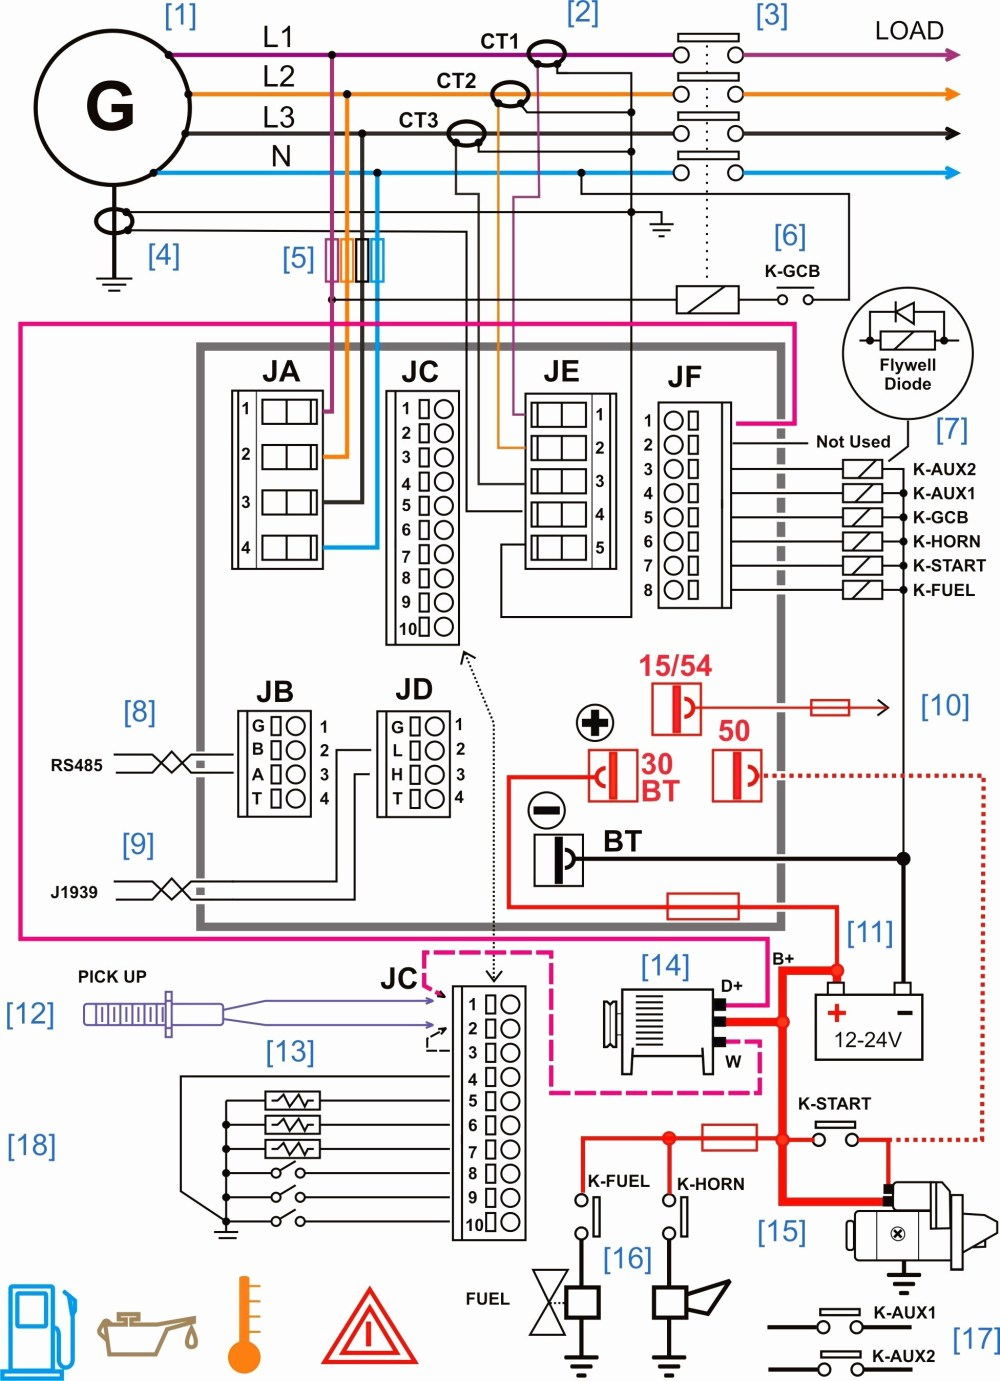 medium resolution of automotive wiring diagram color codes automotive wiring diagram line 2017 automotive wiring diagram line save